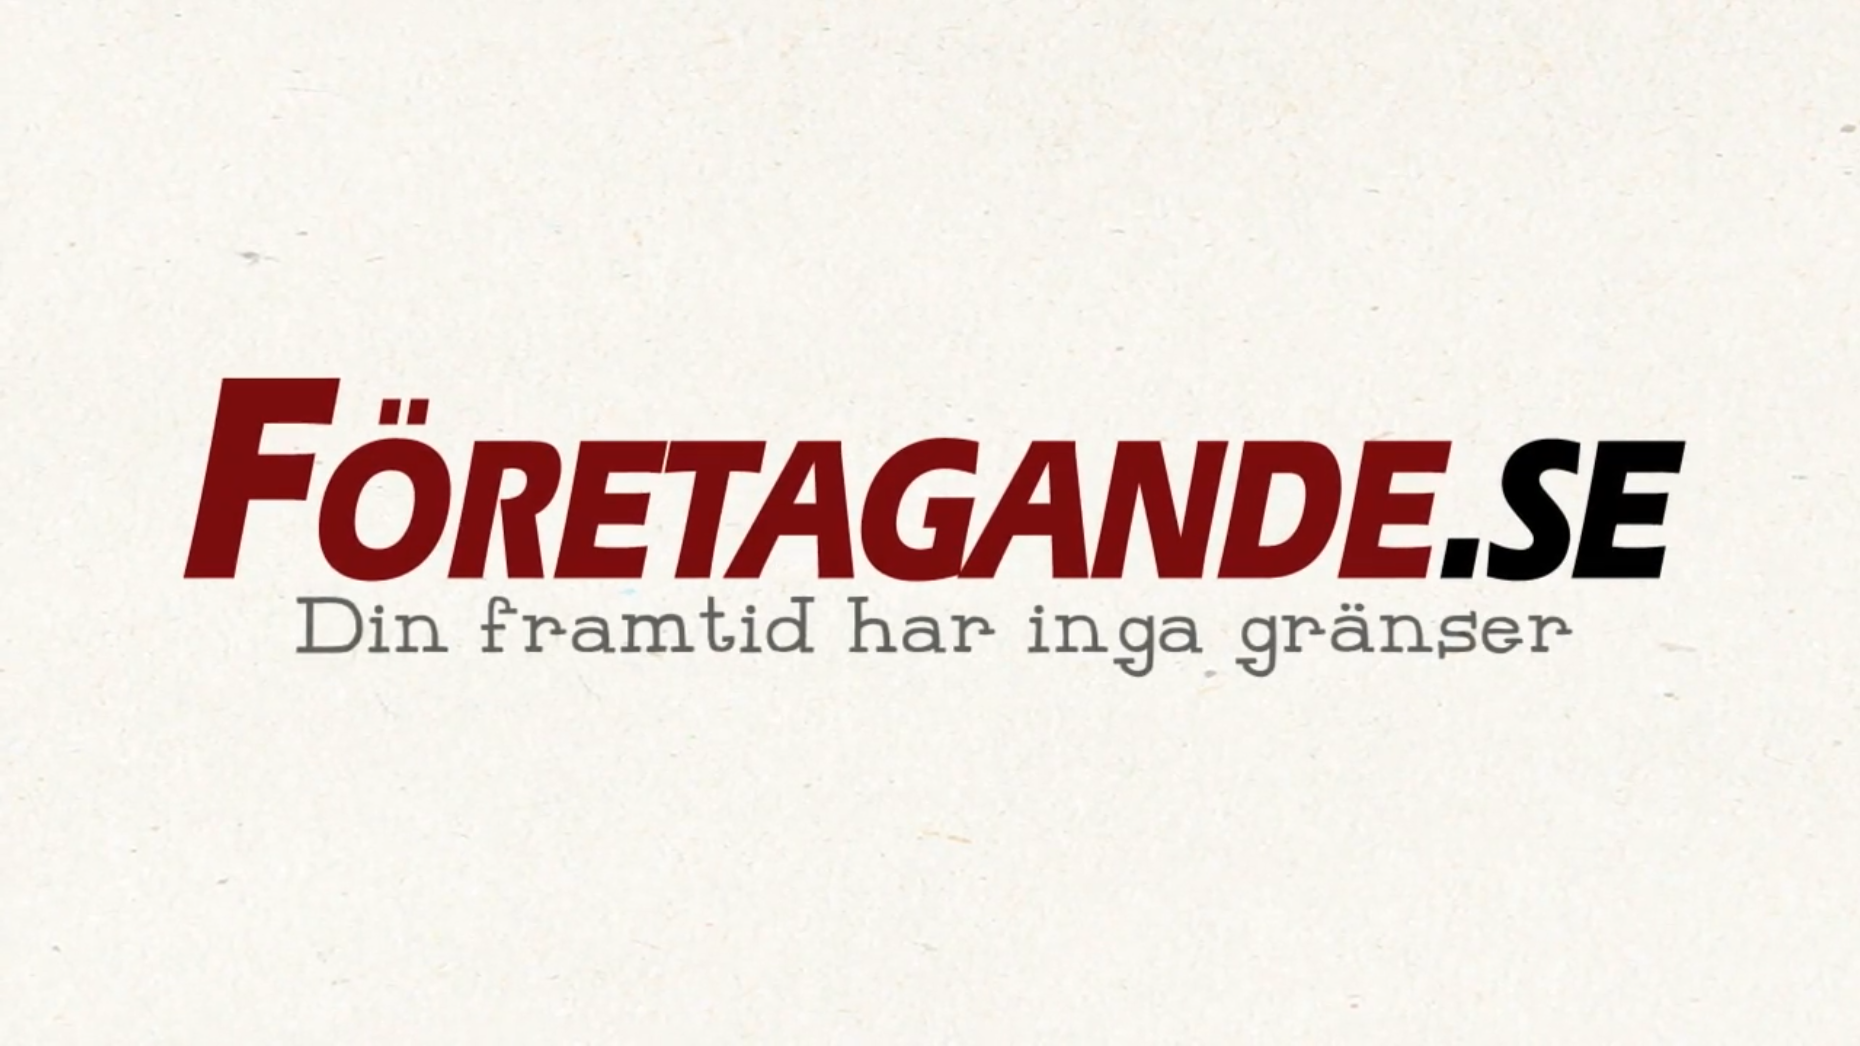 Commercial Voiceover for företagande.se (Swedish)